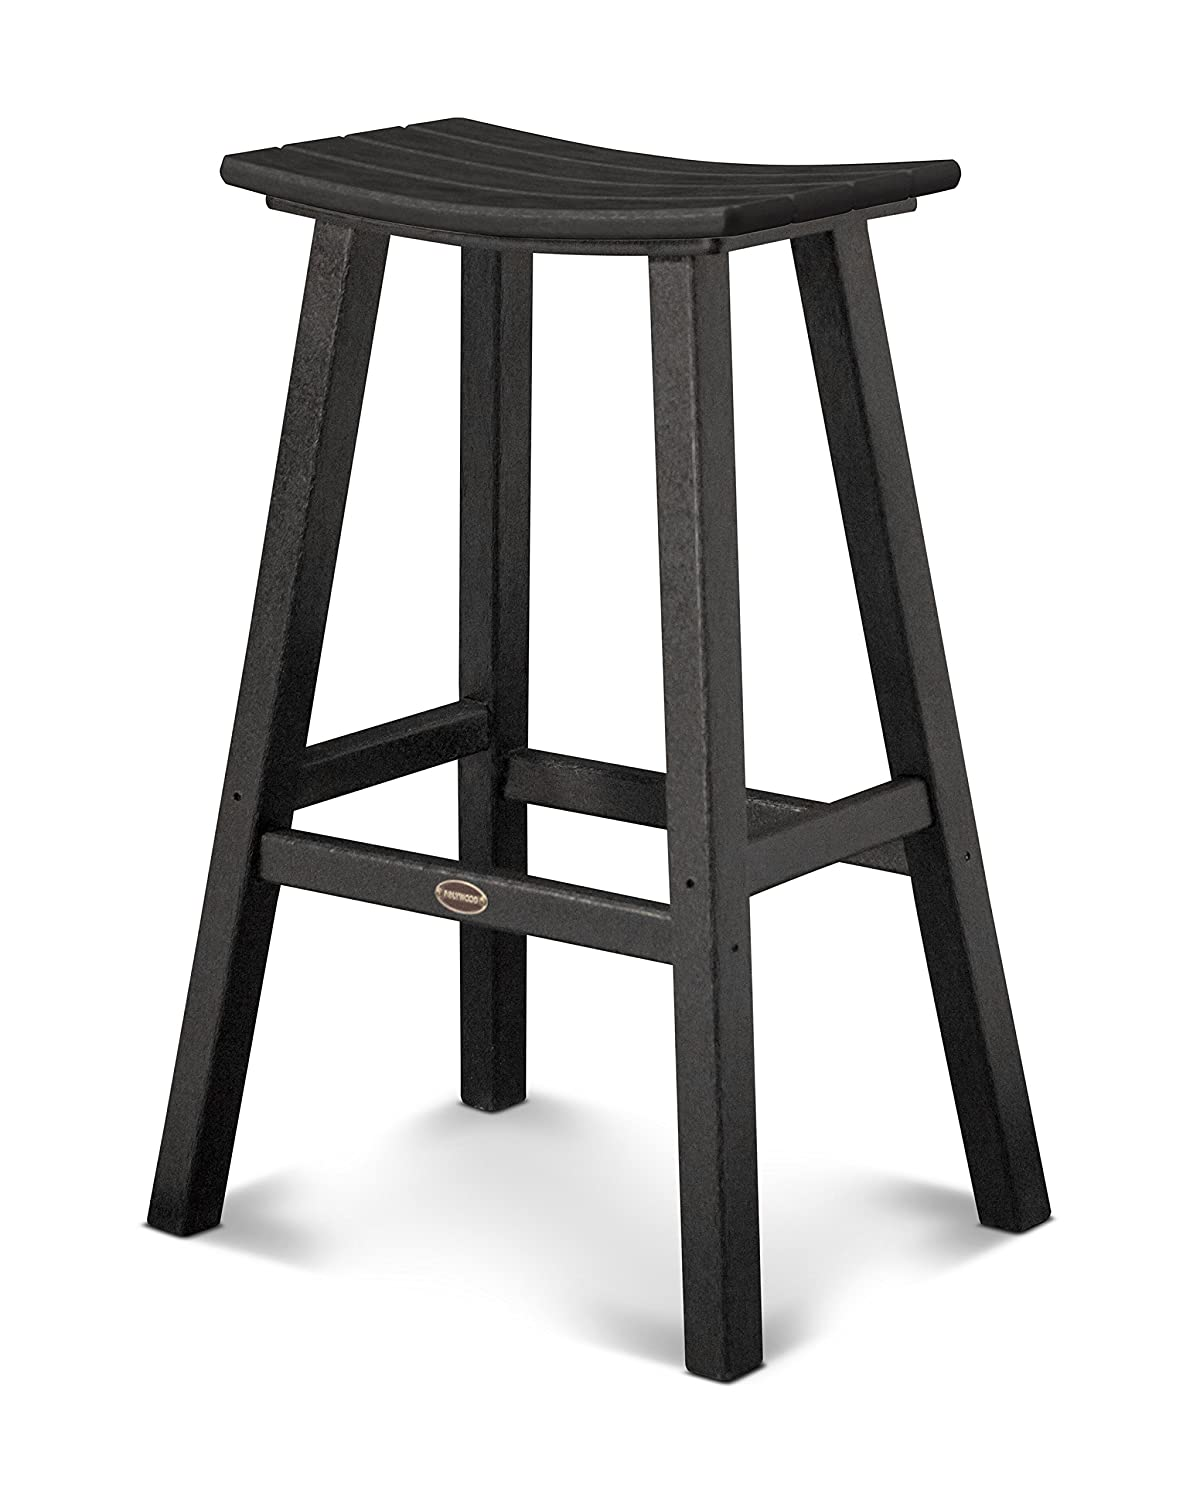 POLYWOOD 2002-BL Traditional 30 Saddle Bar Stool, Black